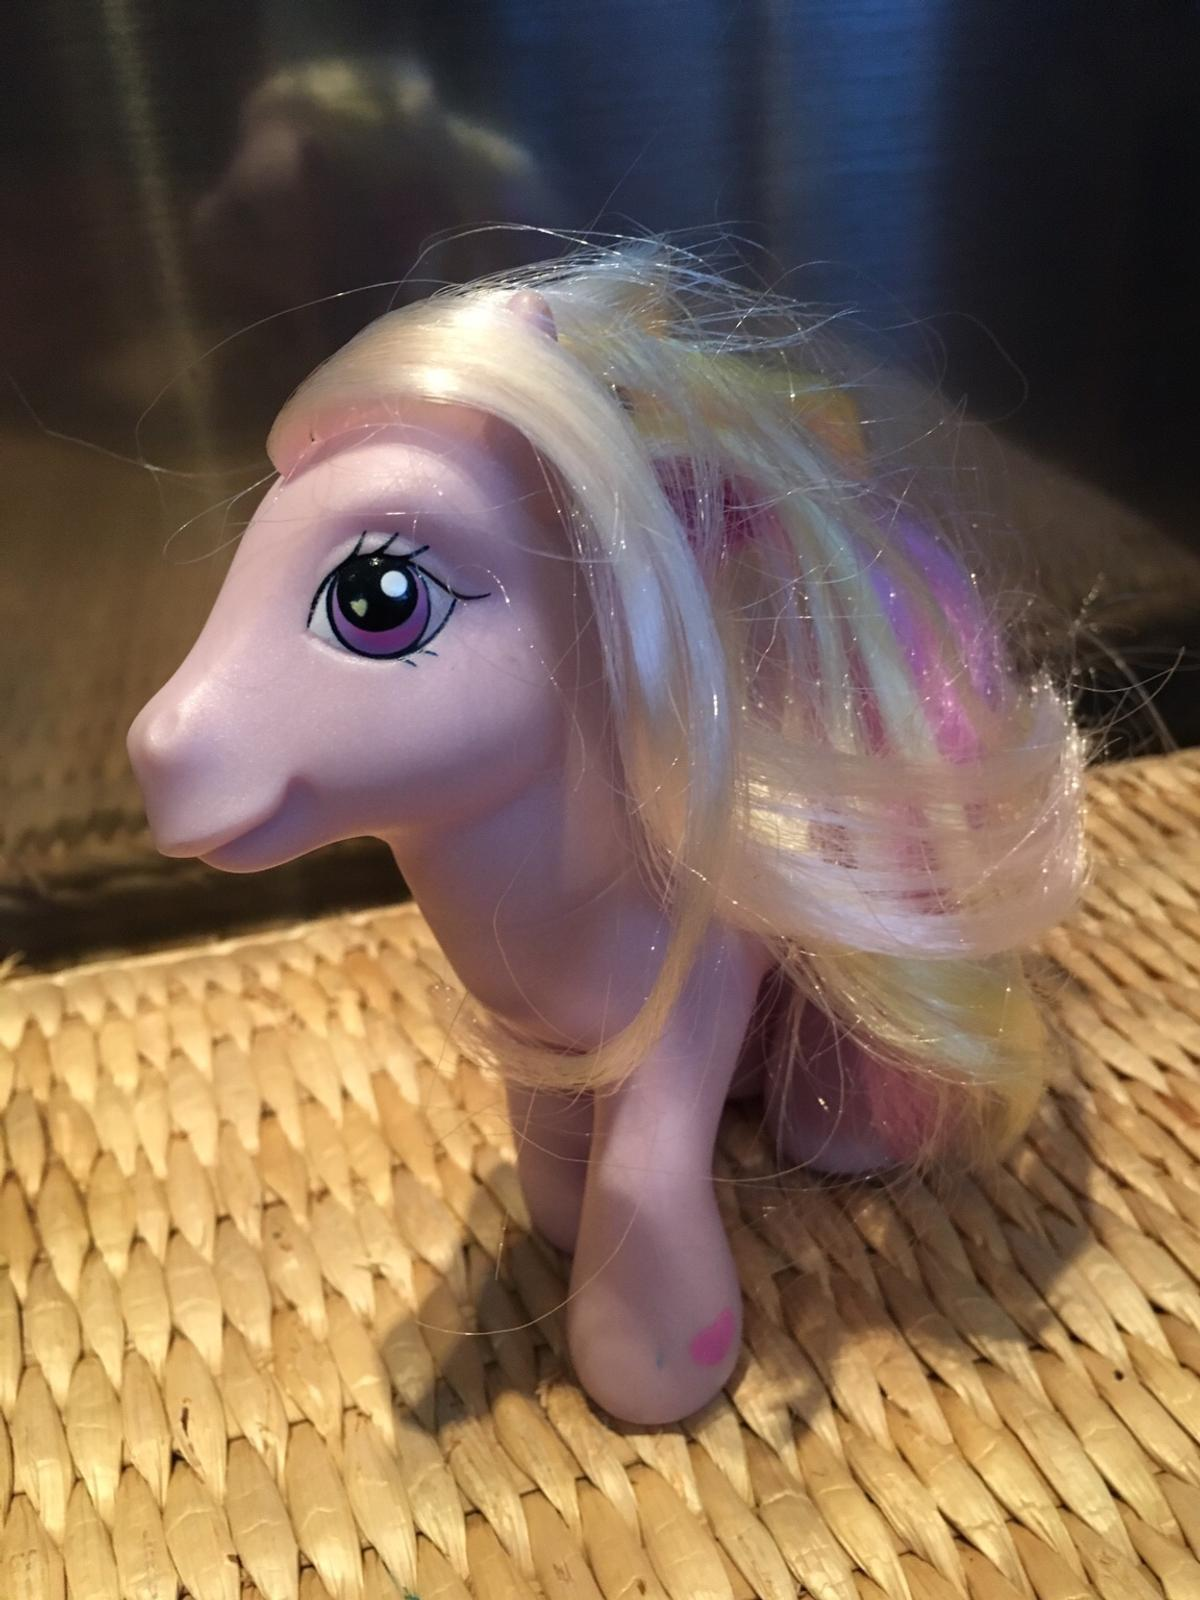 My little Pony collectibles from early 2000s in Barnsley for